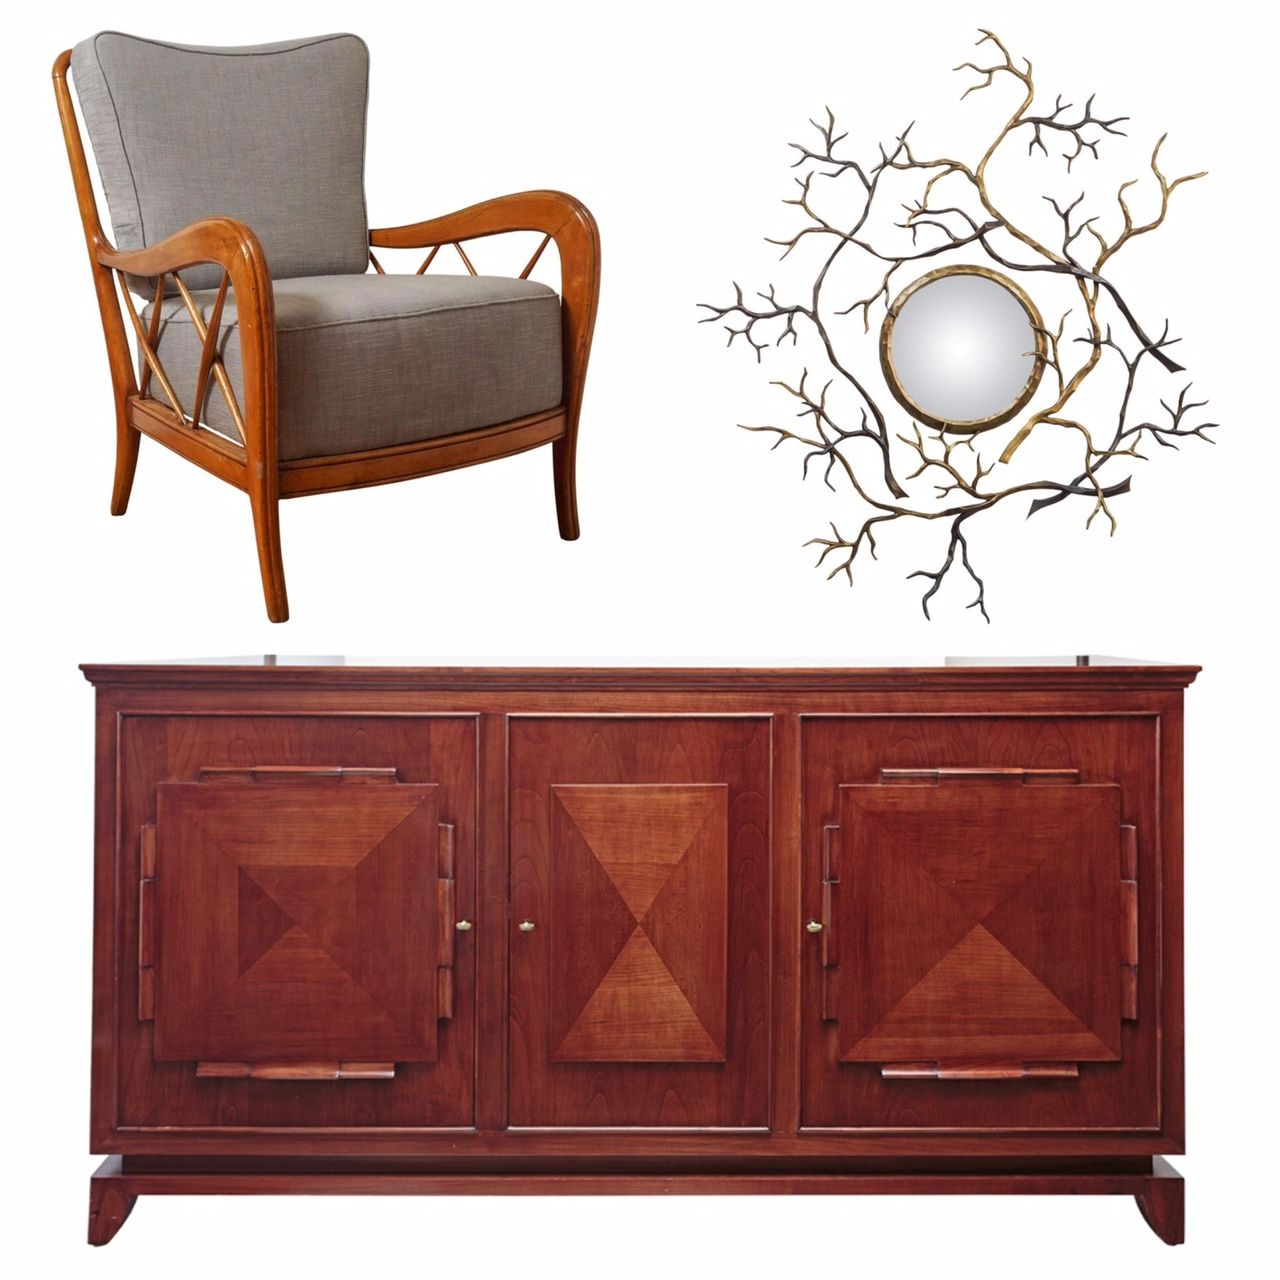 Special New Pieces At Foleycox HOME Include A Pair Of Paolo Buffa Armchairs An Herve Van Der